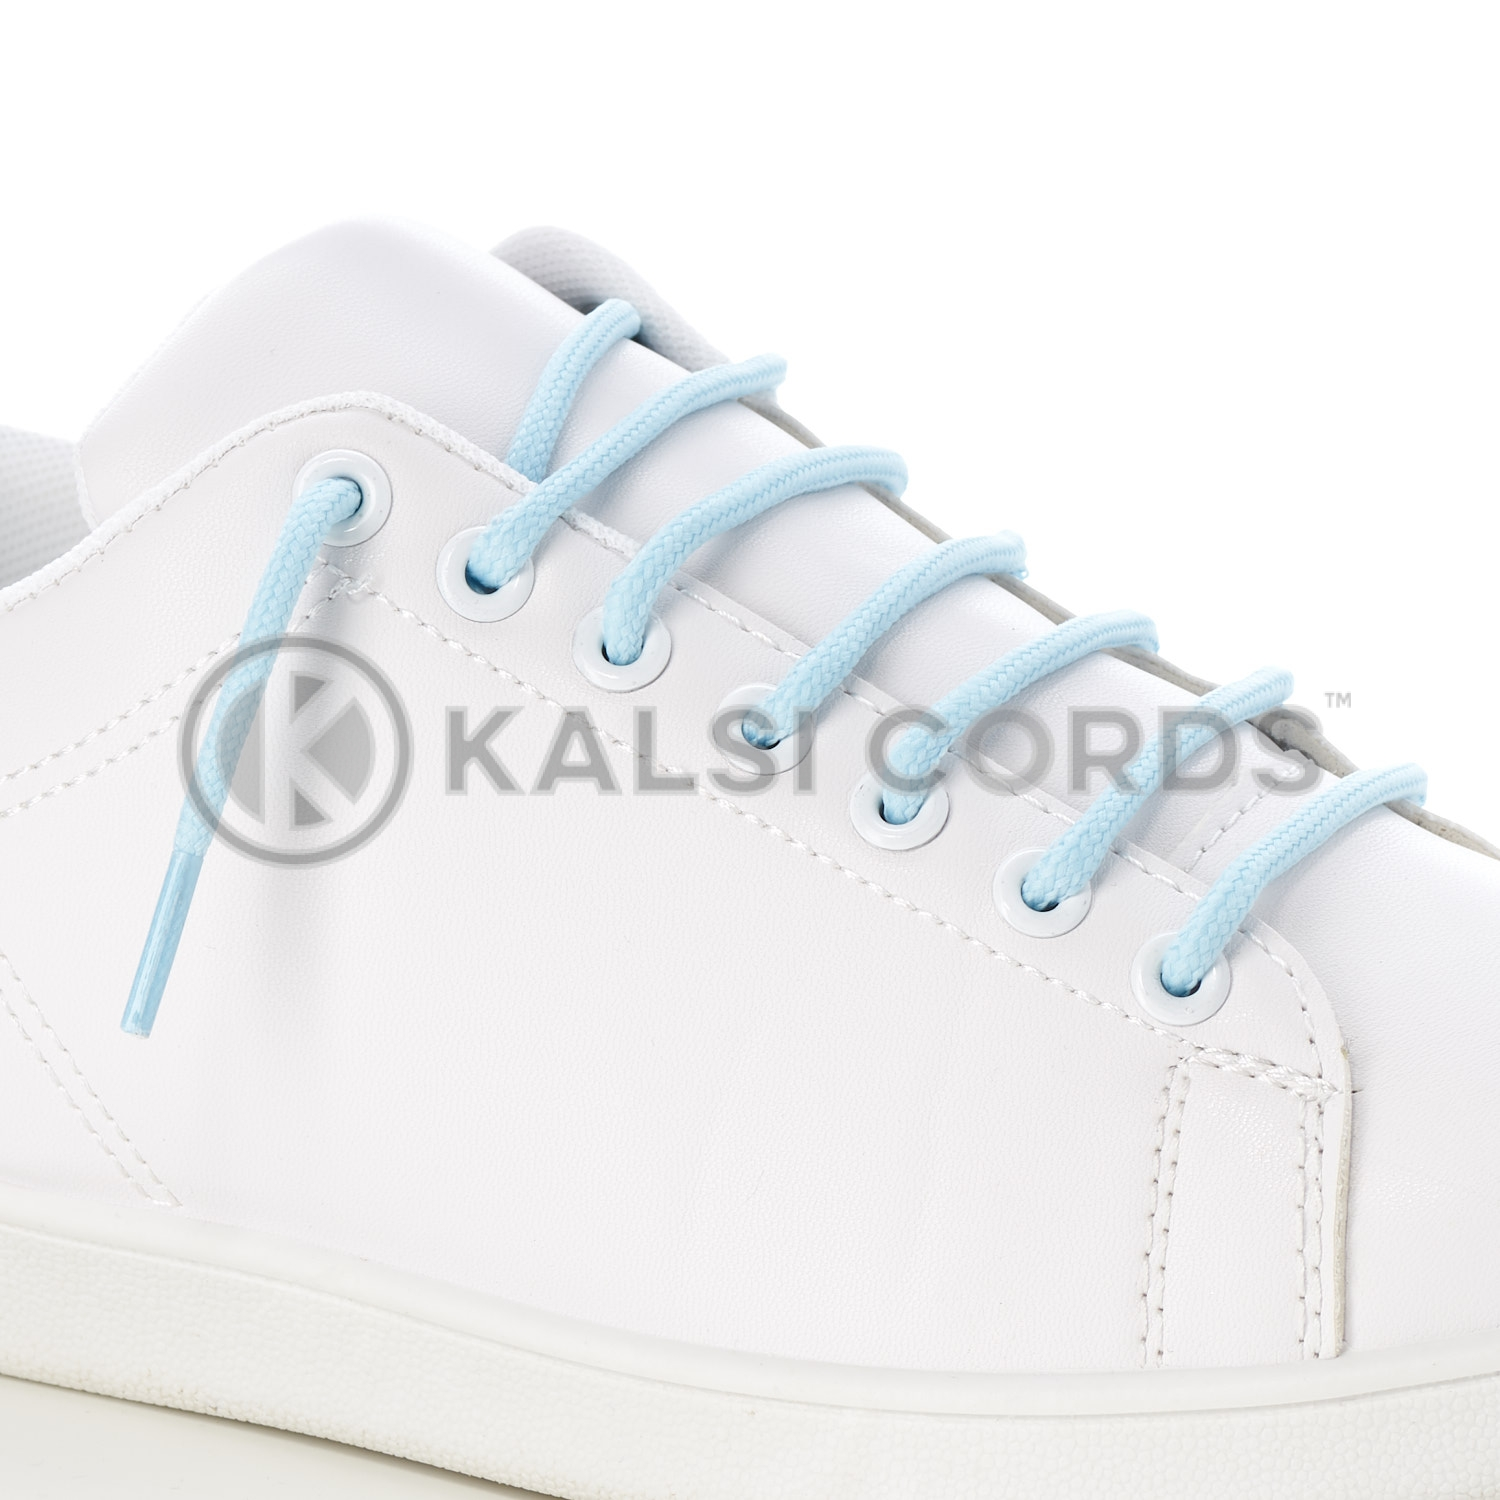 T621 5mm Round Cord Shoe Laces Baby Blue PG835 Kids Trainers Adults Hiking Walking Boots Kalsi Cords